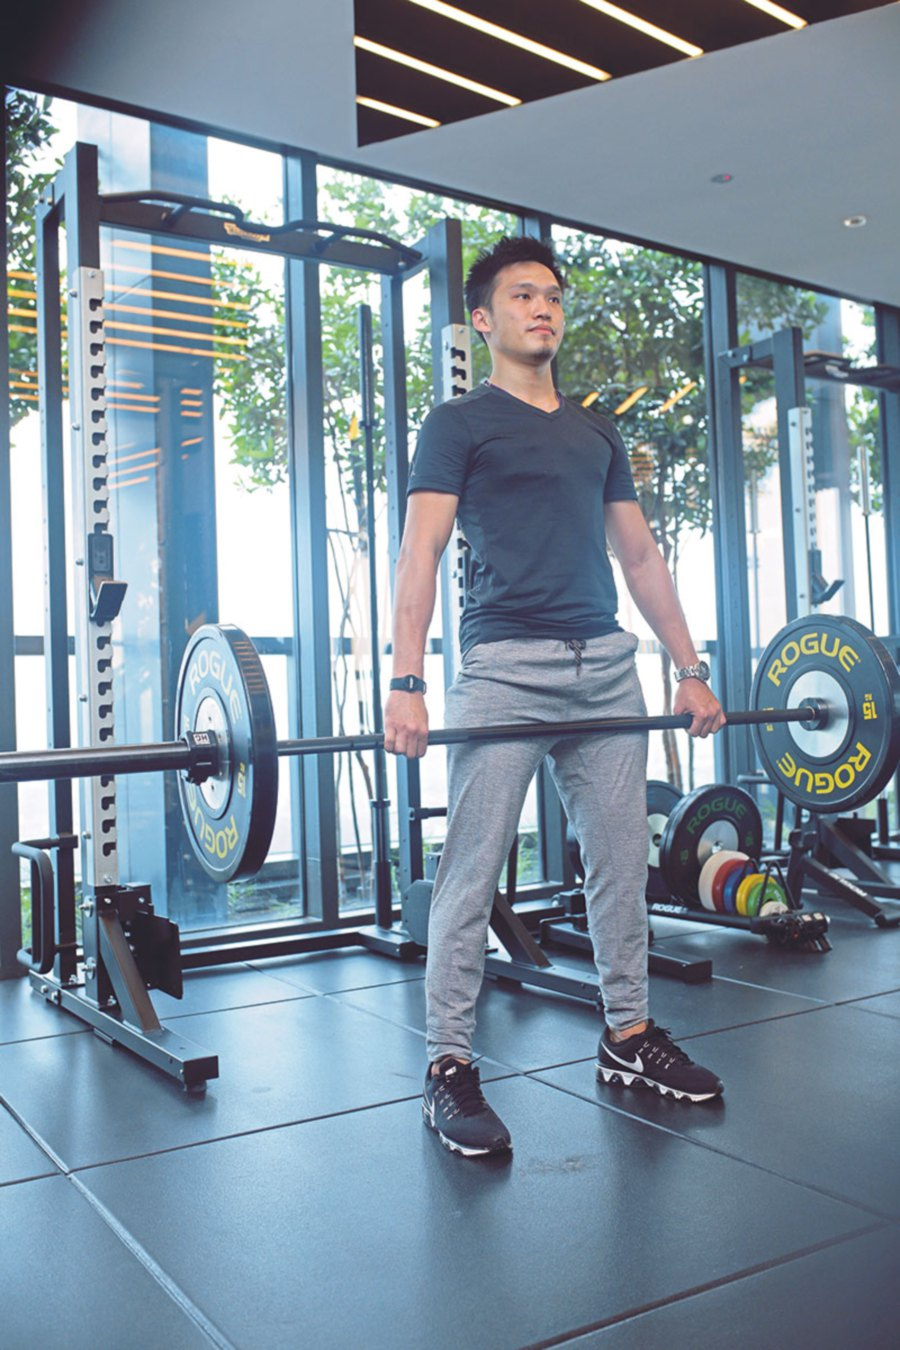 According to WebMD, the main CrossFit exercises involve the whole body and include pushing, pulling, running, rowing and squatting.